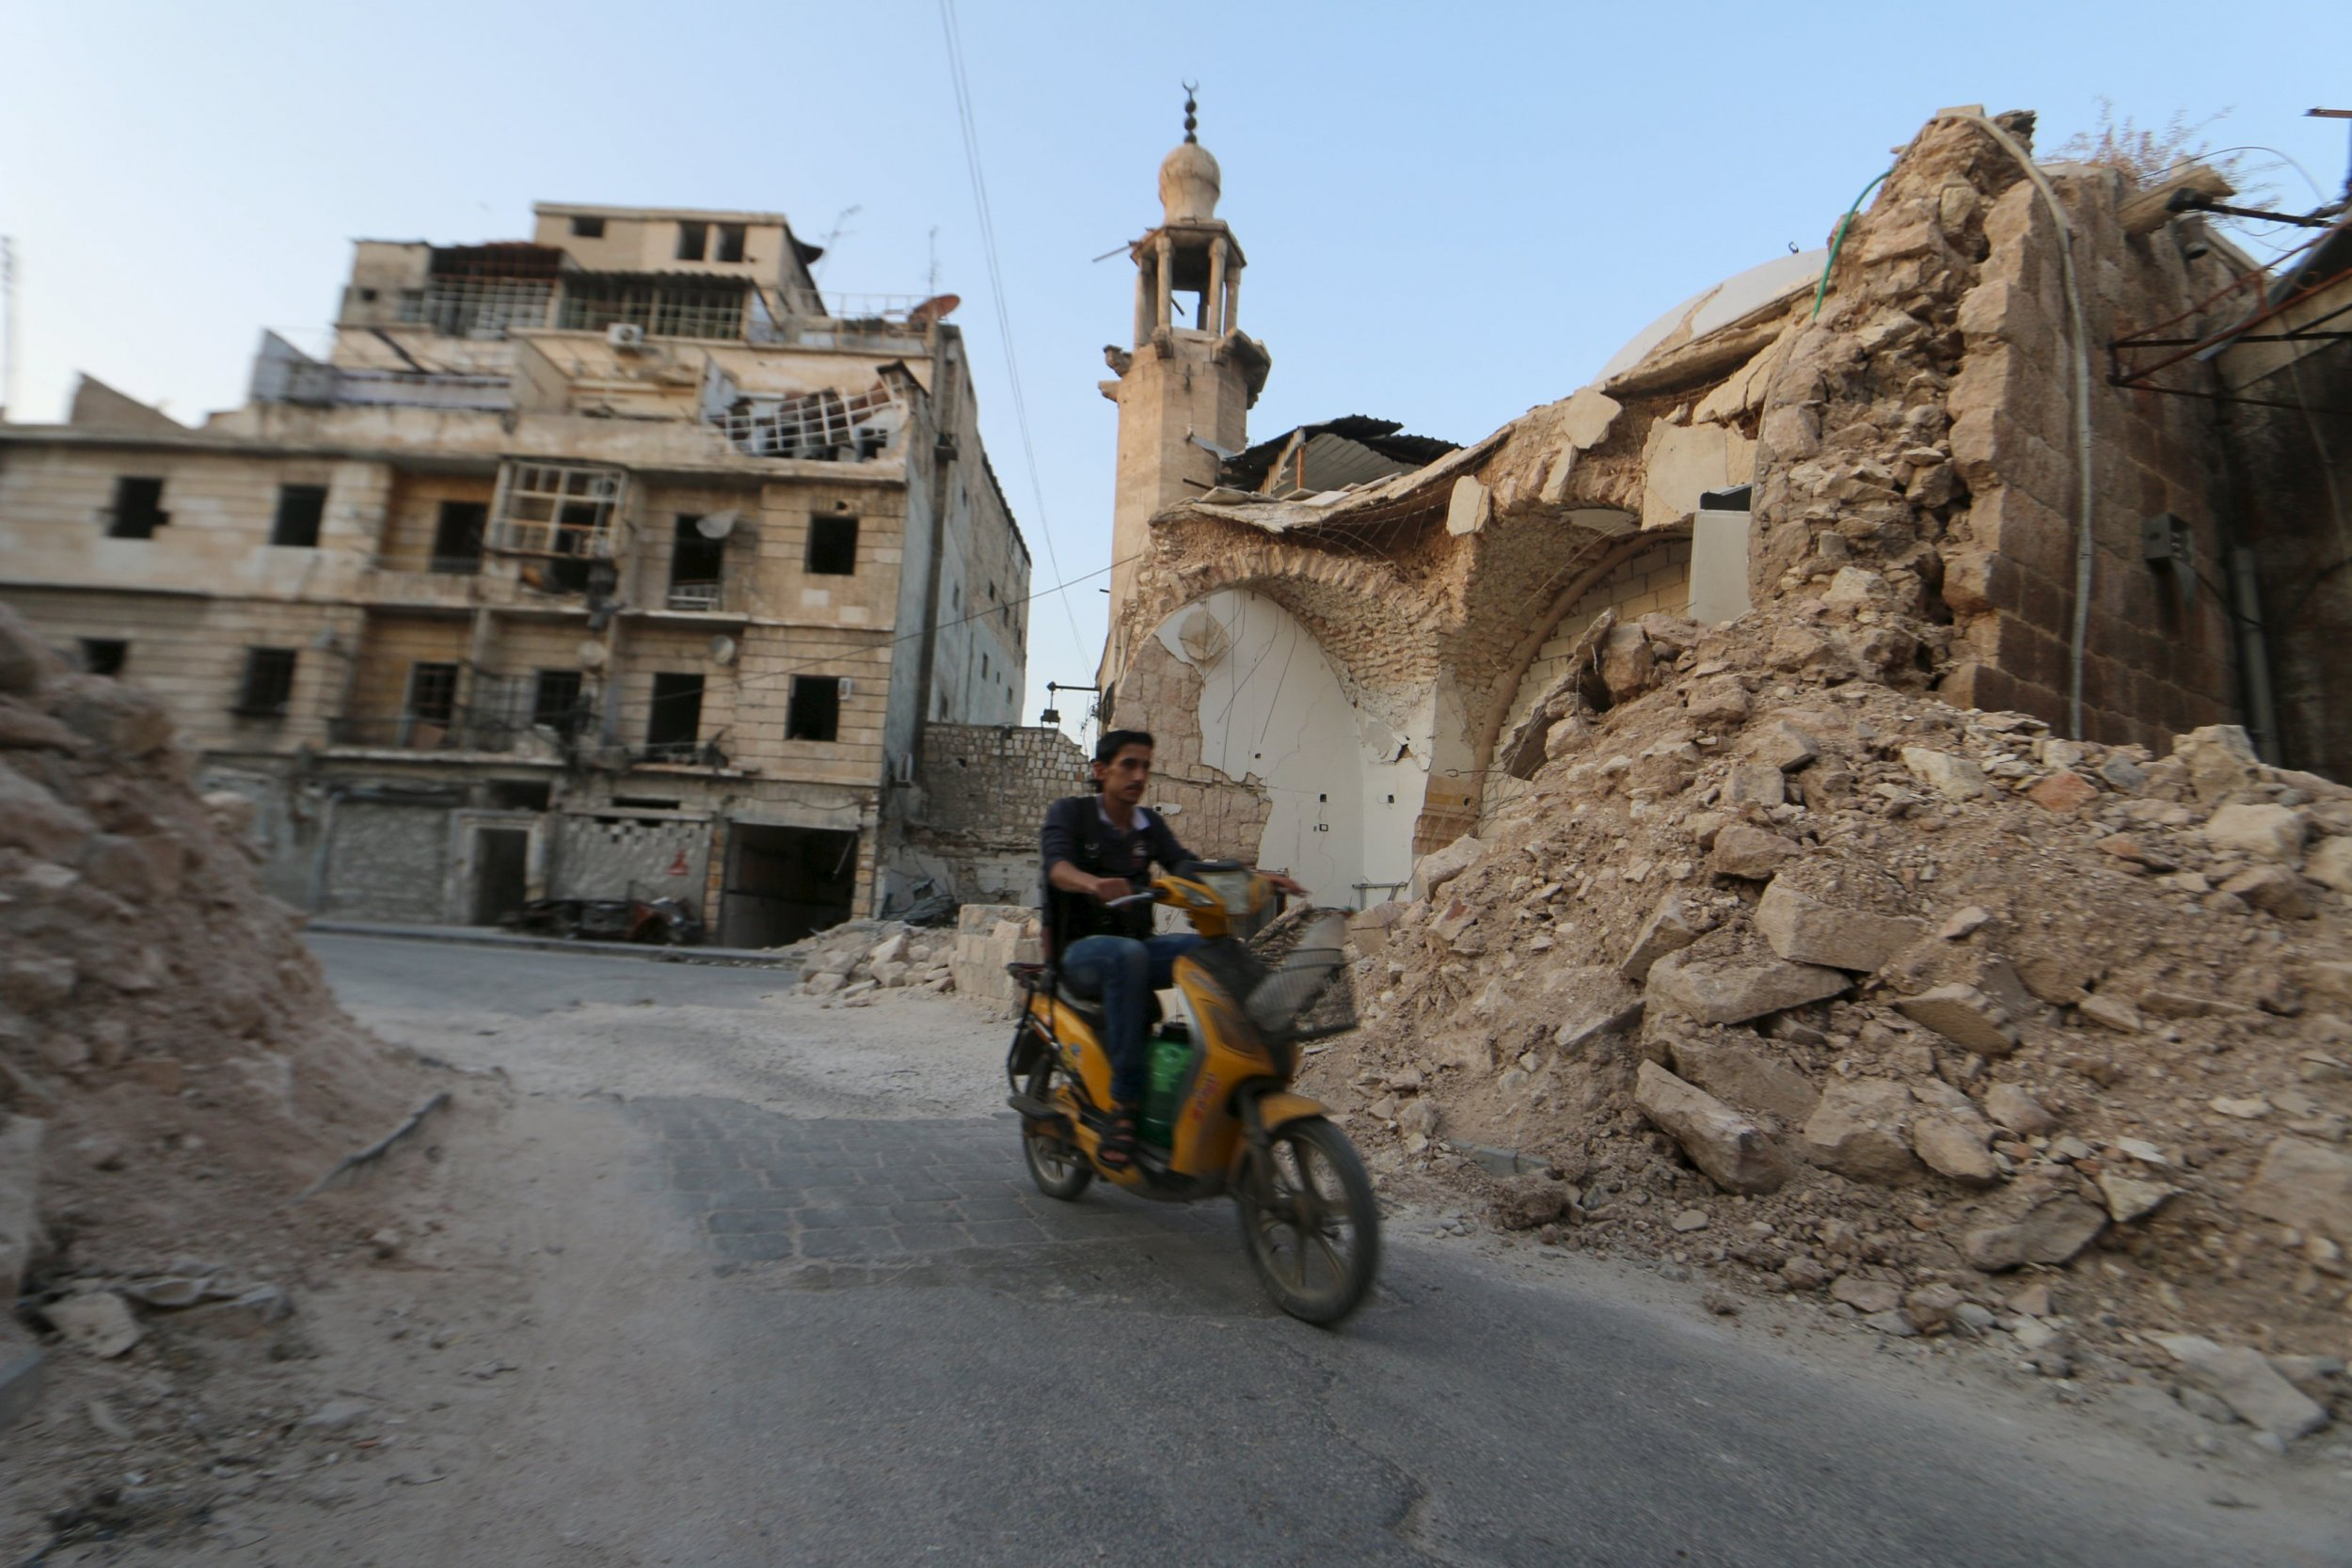 2015-07-15T195119Z_1924653176_GF10000160147_RTRMADP_3_MIDEAST-CRISIS-SYRIA